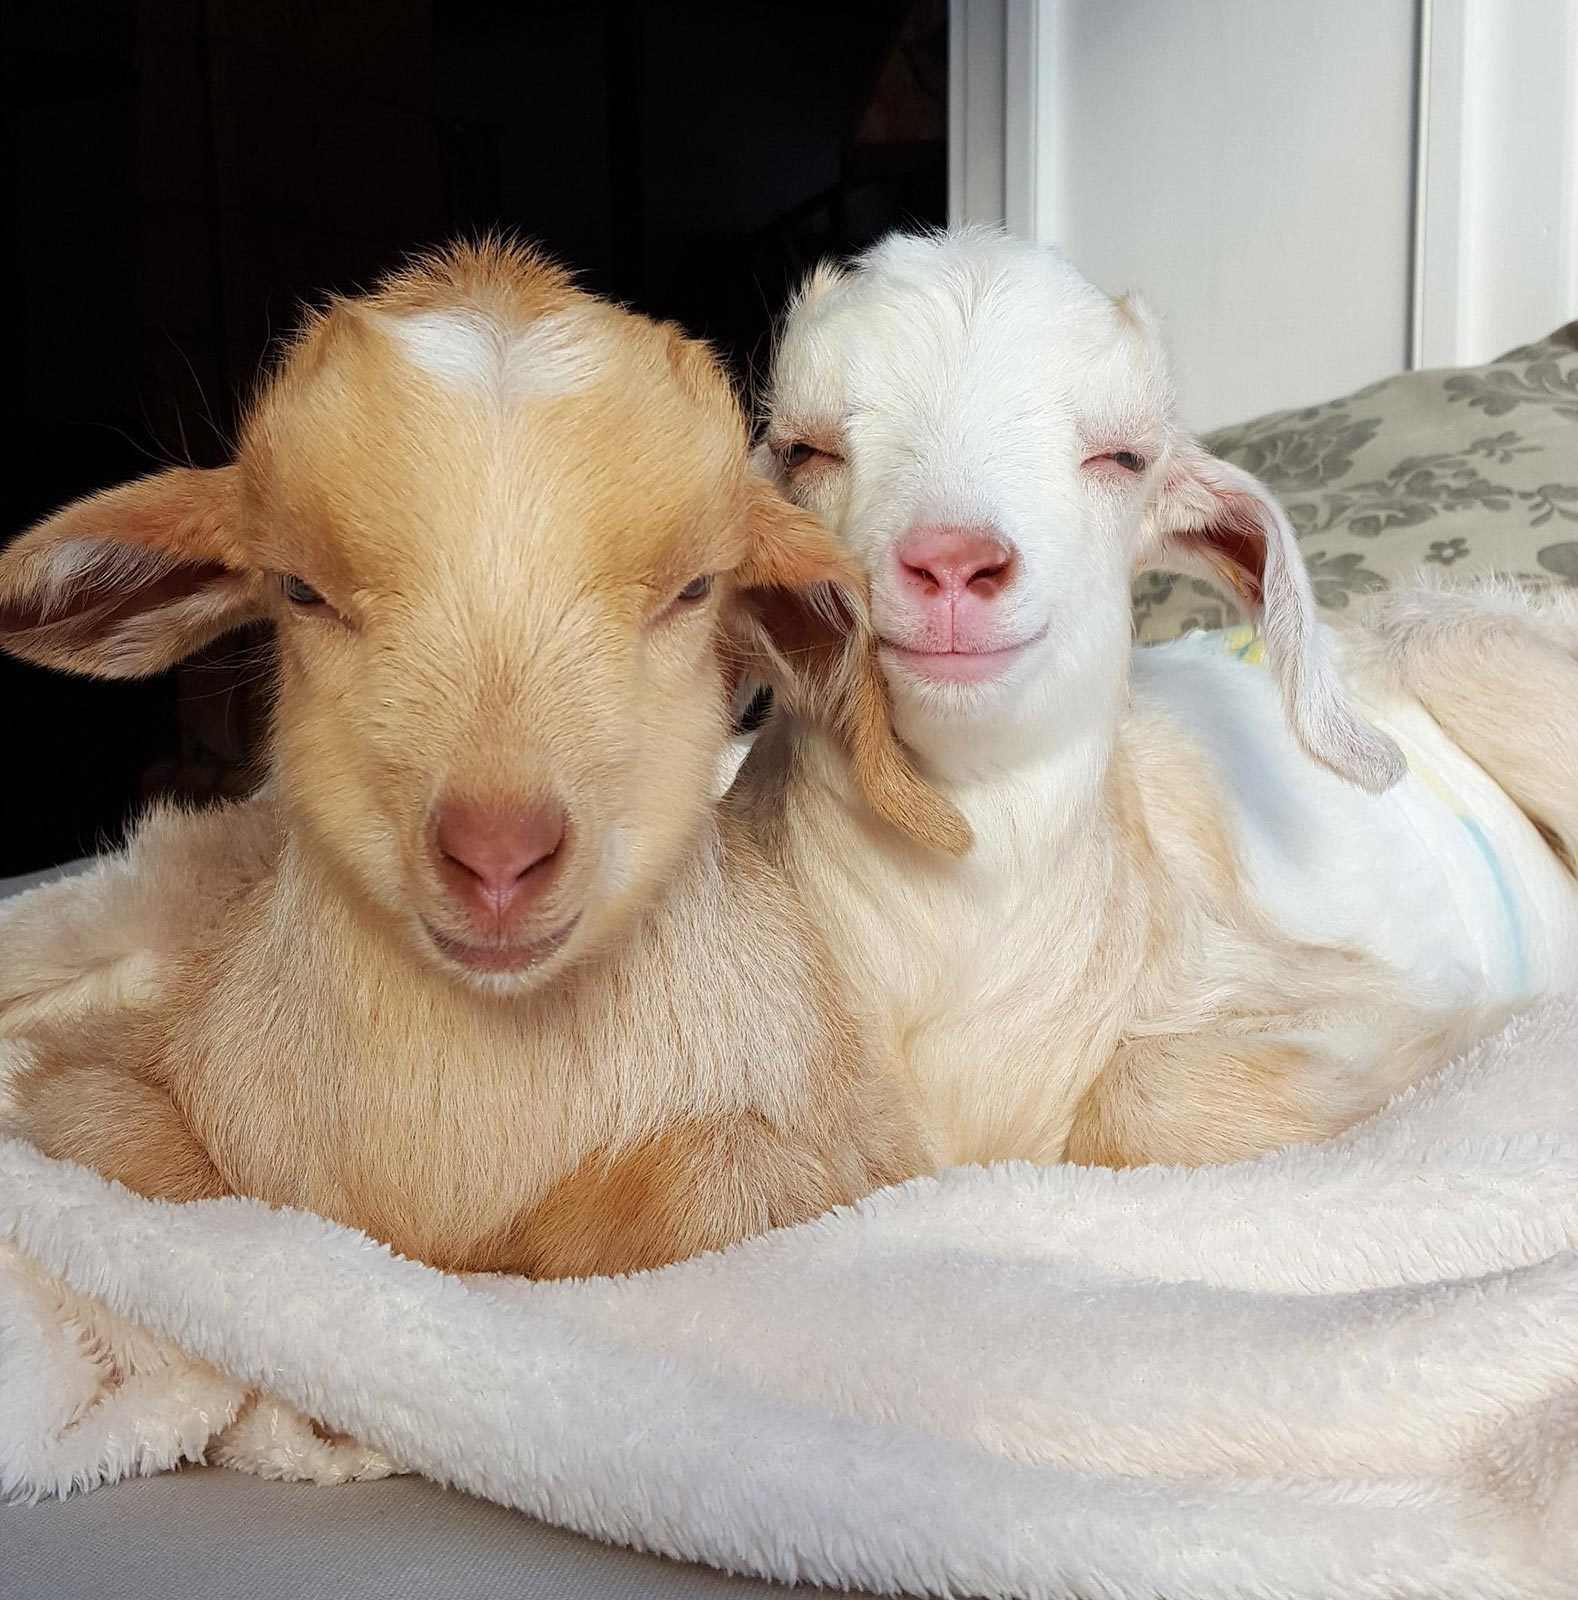 two baby goats snuggled together sitting on a blanket